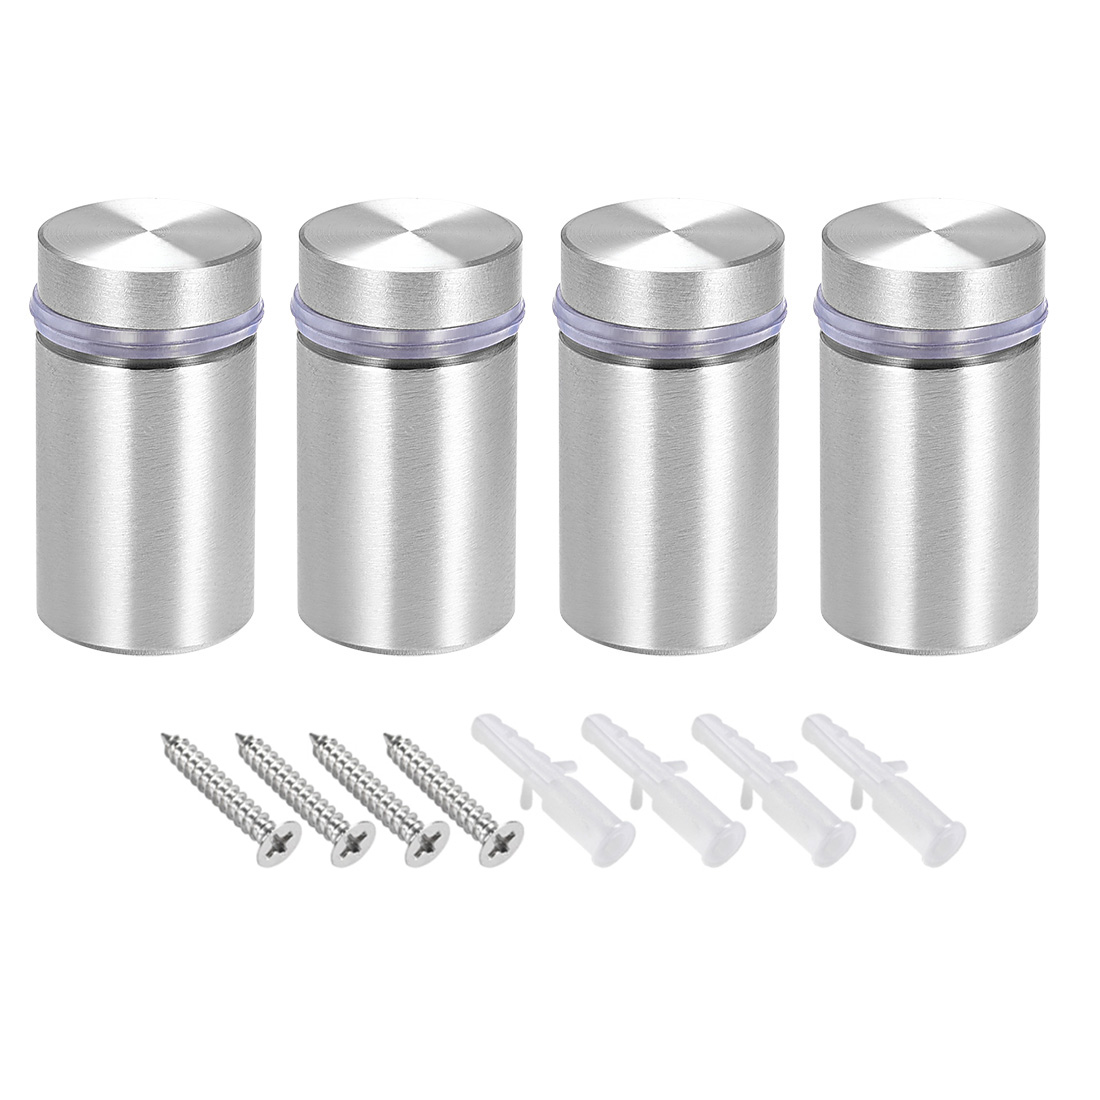 Glass Standoff Mount Solid Stainless Steel Wall Standoff Holder 18mmx33mm 4 Pcs